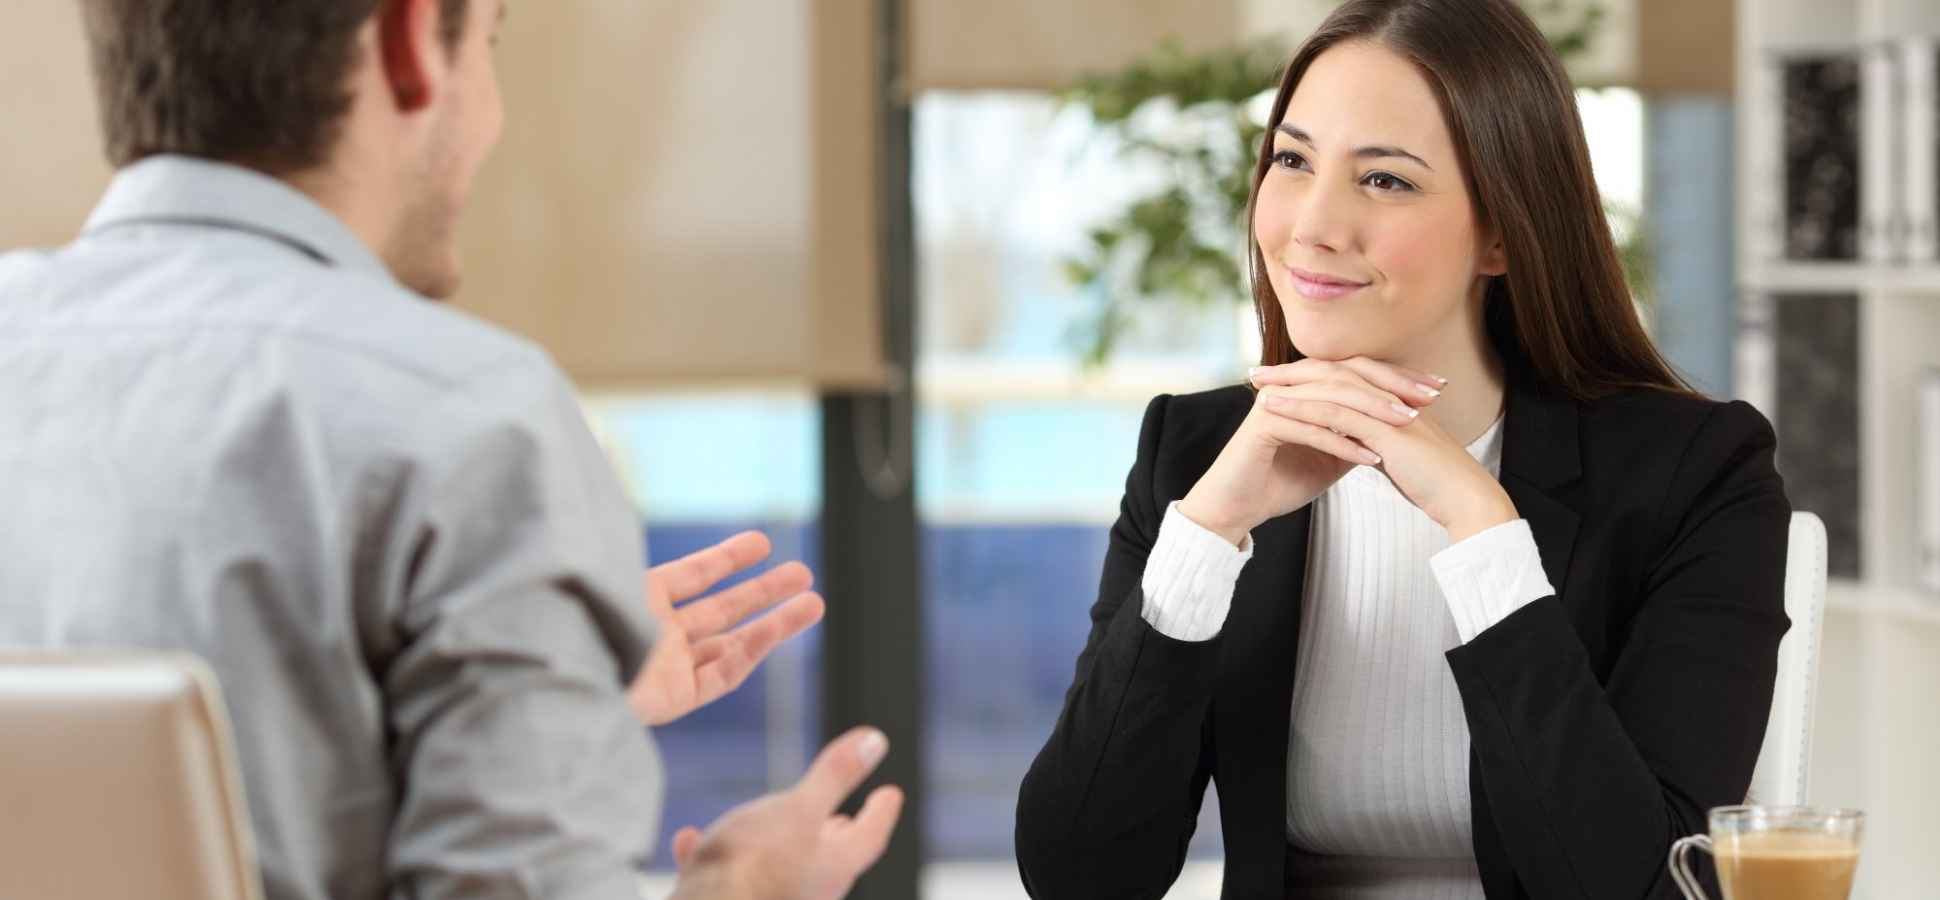 Why You Should Respond Positively to Negative Feedback